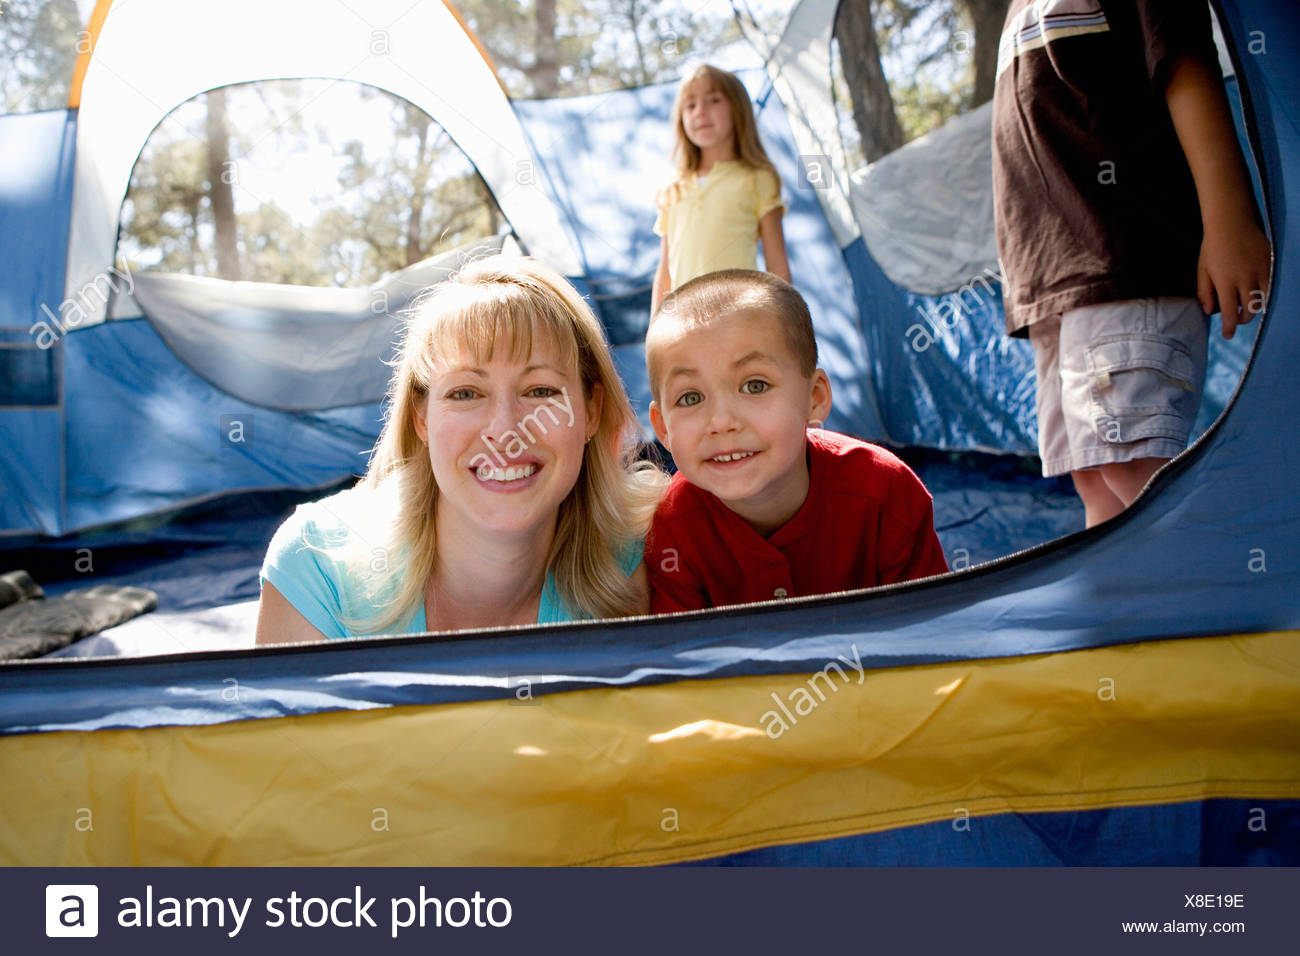 Portrait of a mother and son in a tent - Stock Image